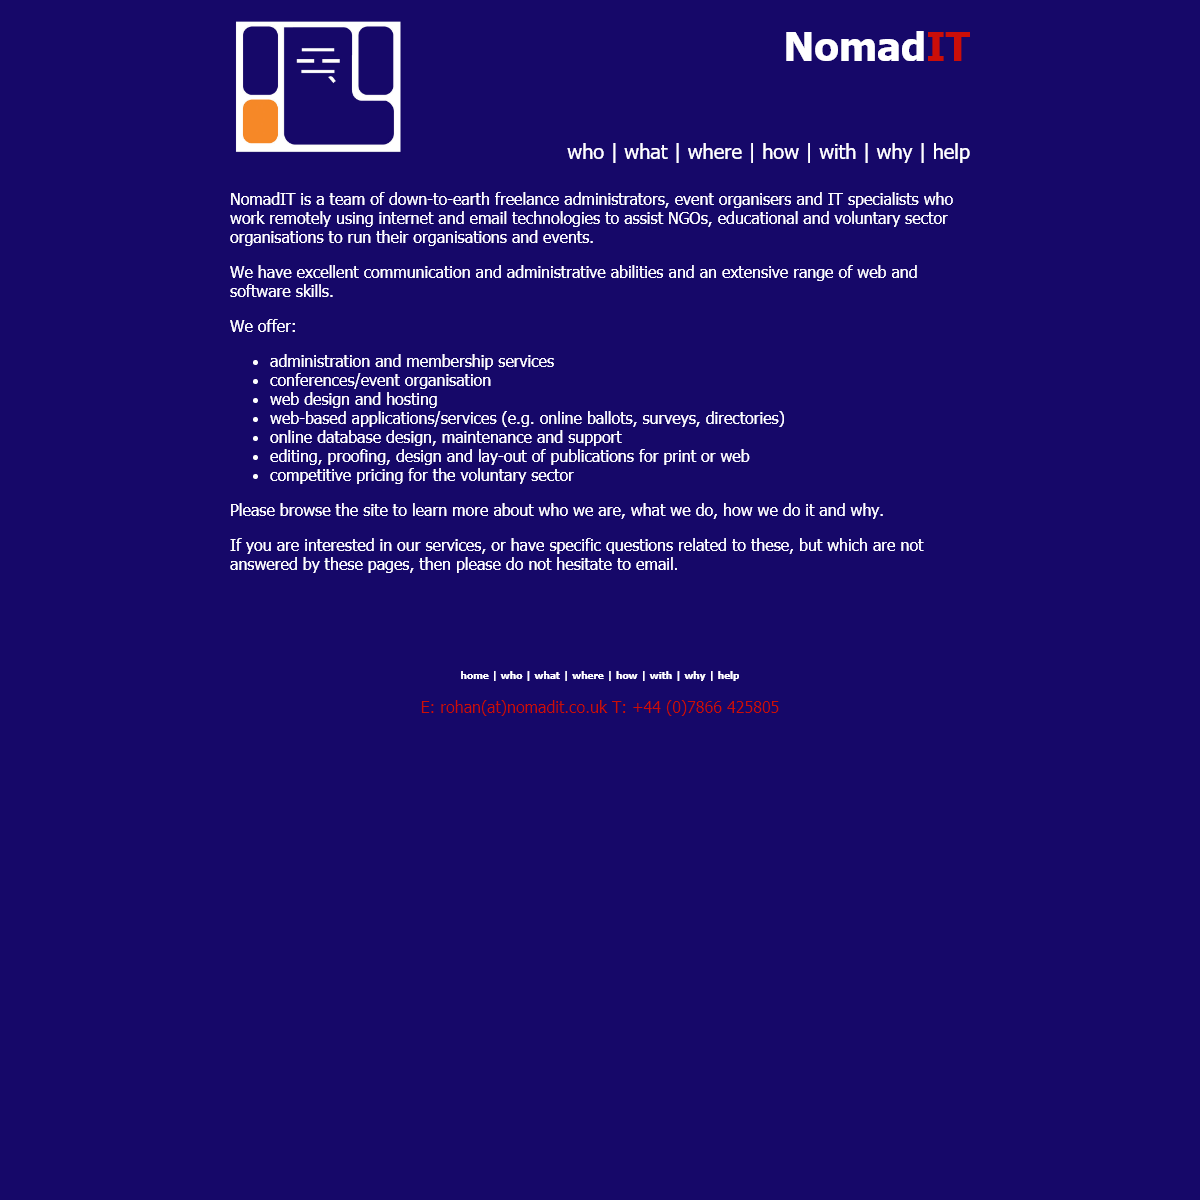 NomadIT - remote event organisation and membership administration